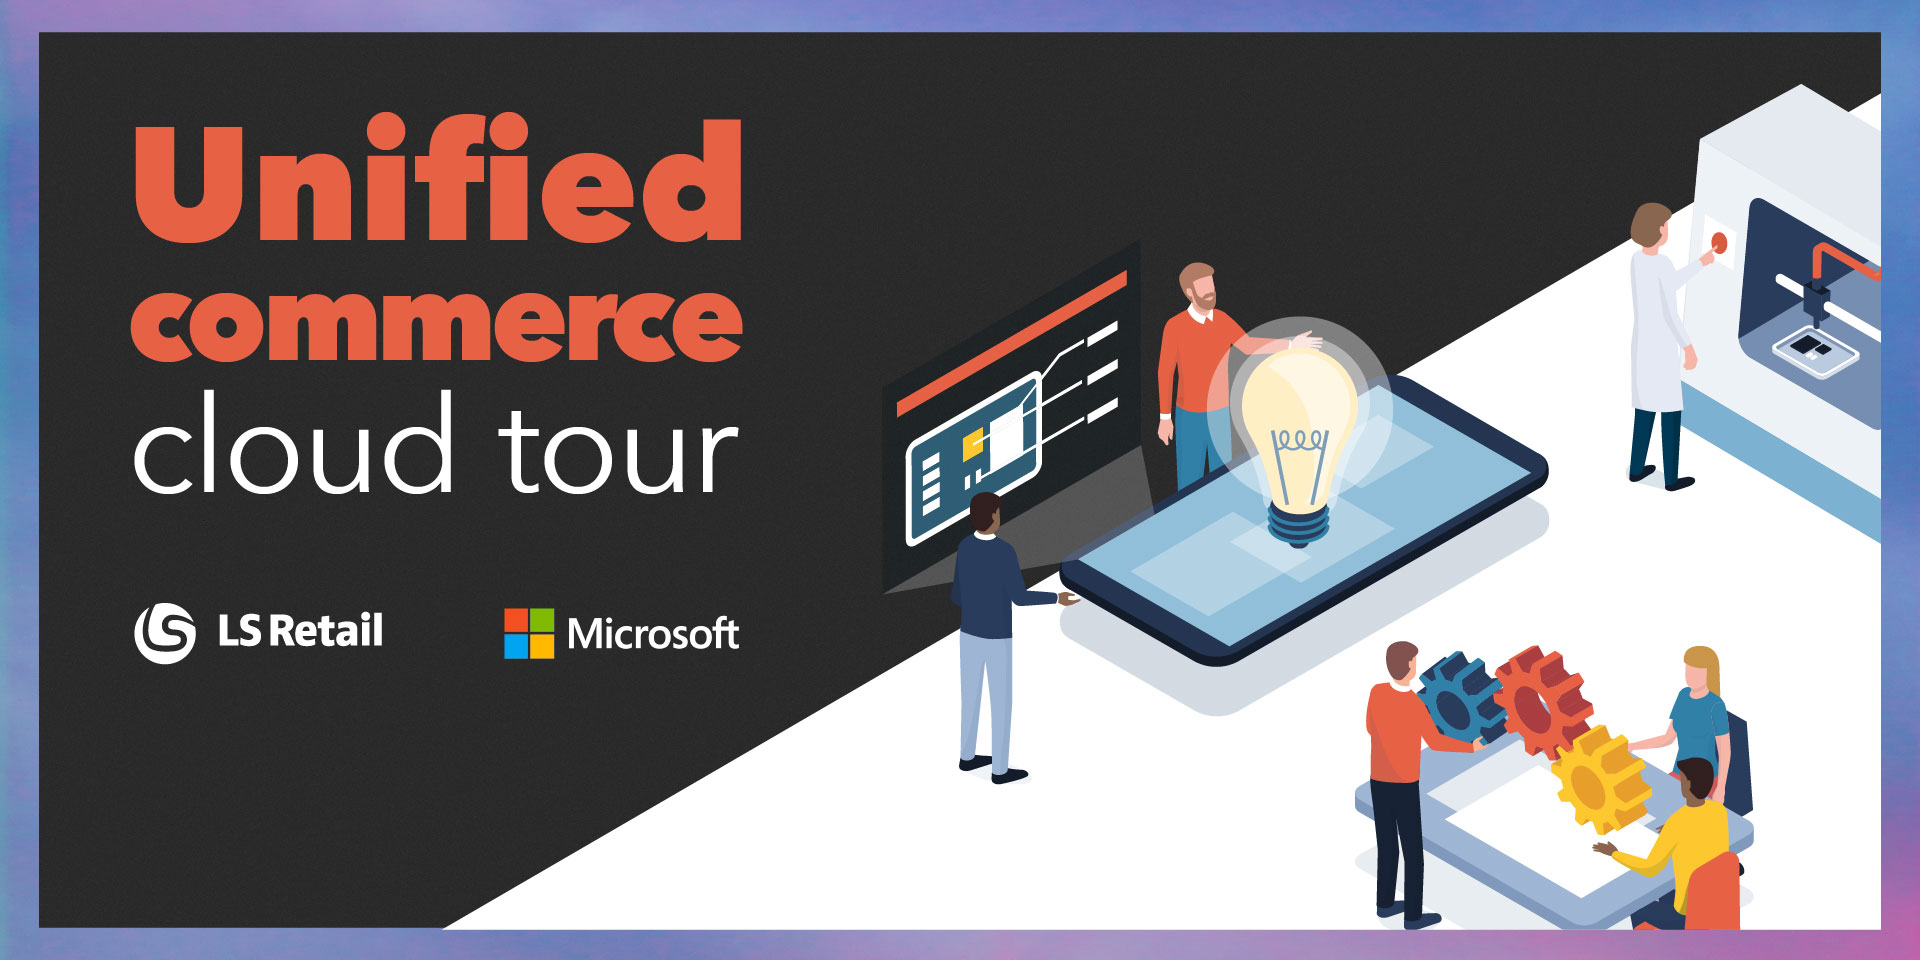 LS Retail and Microsoft Unified Commerce Cloud Tour 2019